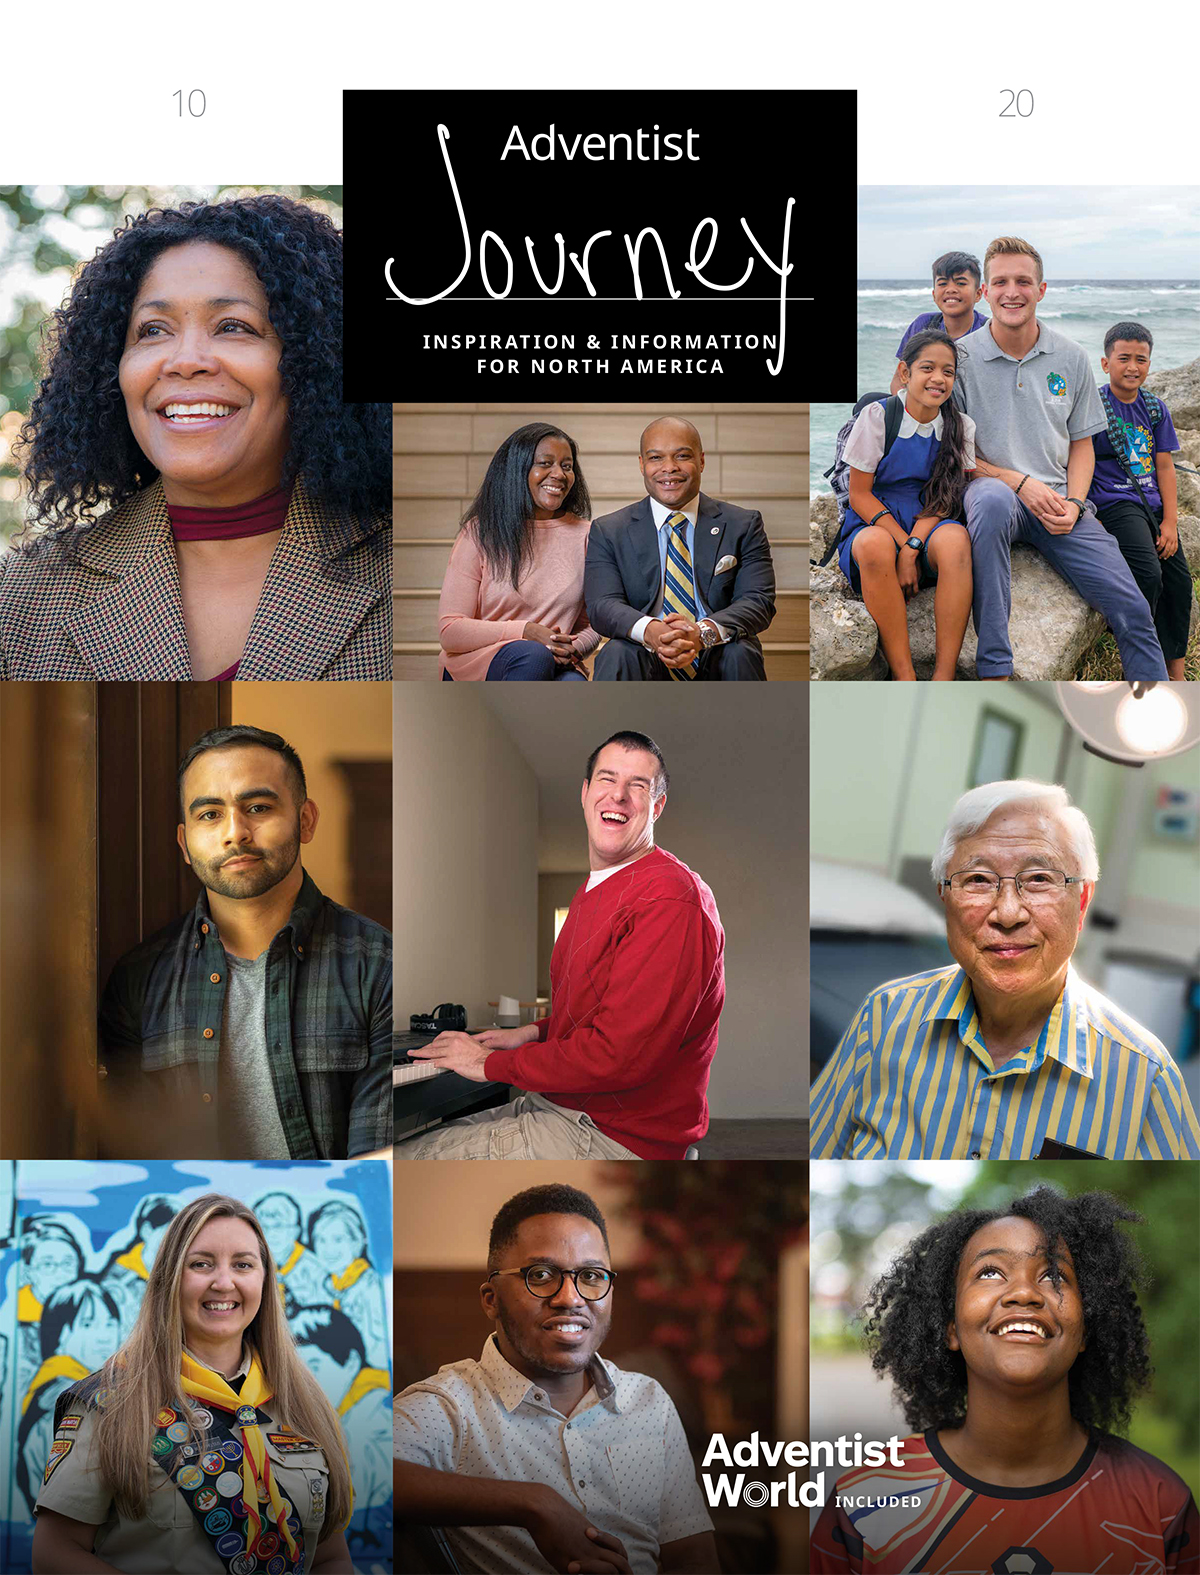 Adventist Journey magazine cover with nine people